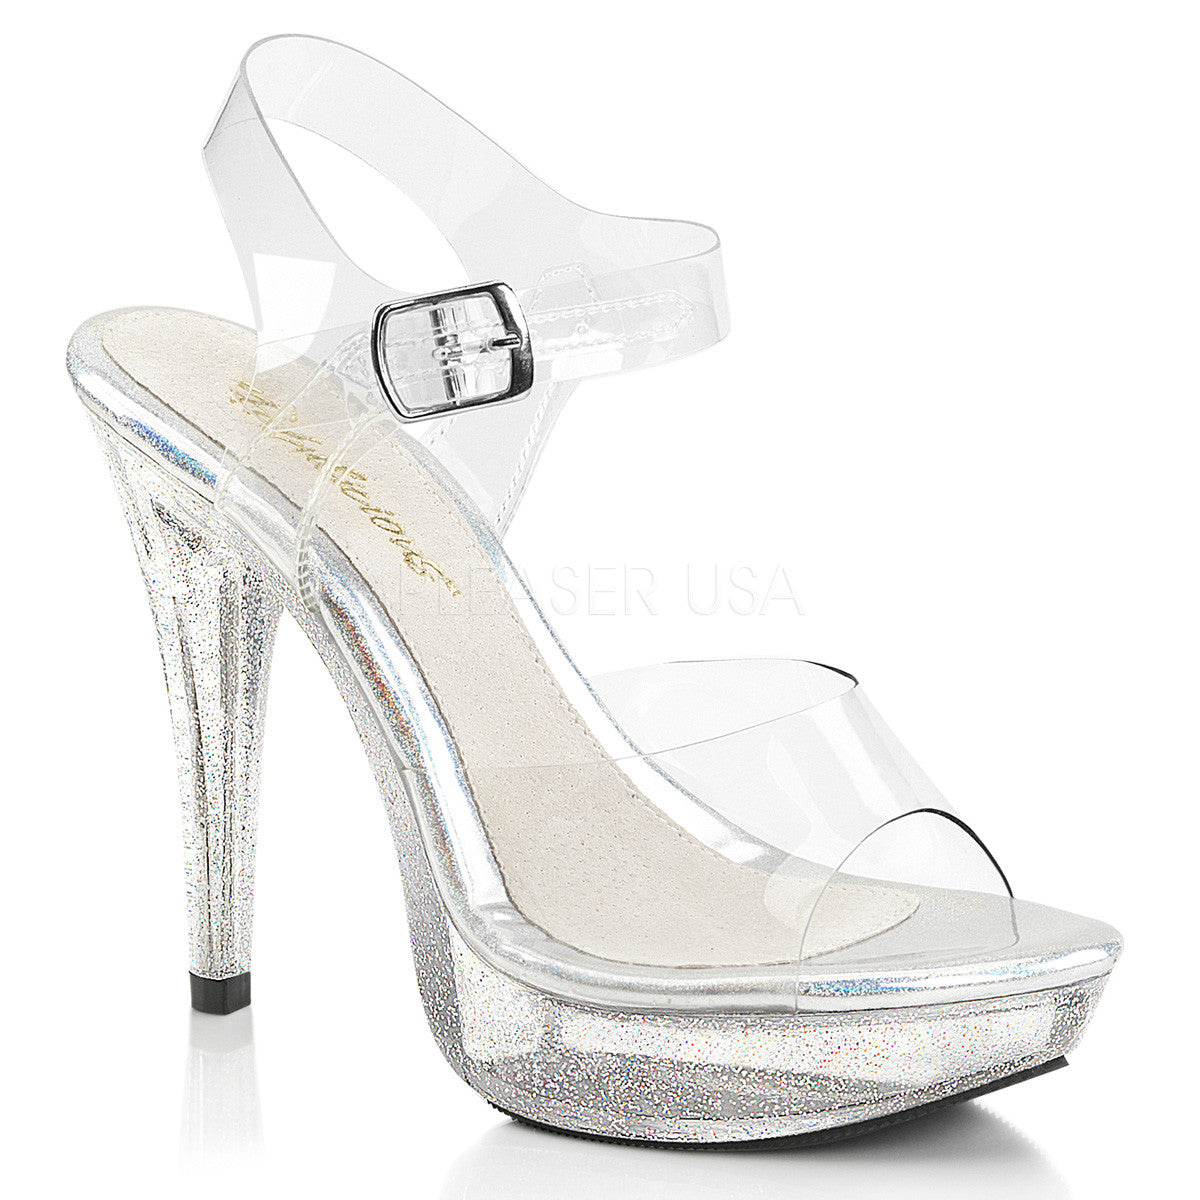 Fabulicious COCKTAIL-508MG Clear Ankle Strap Sandals With Glitter Bottom - Shoecup.com